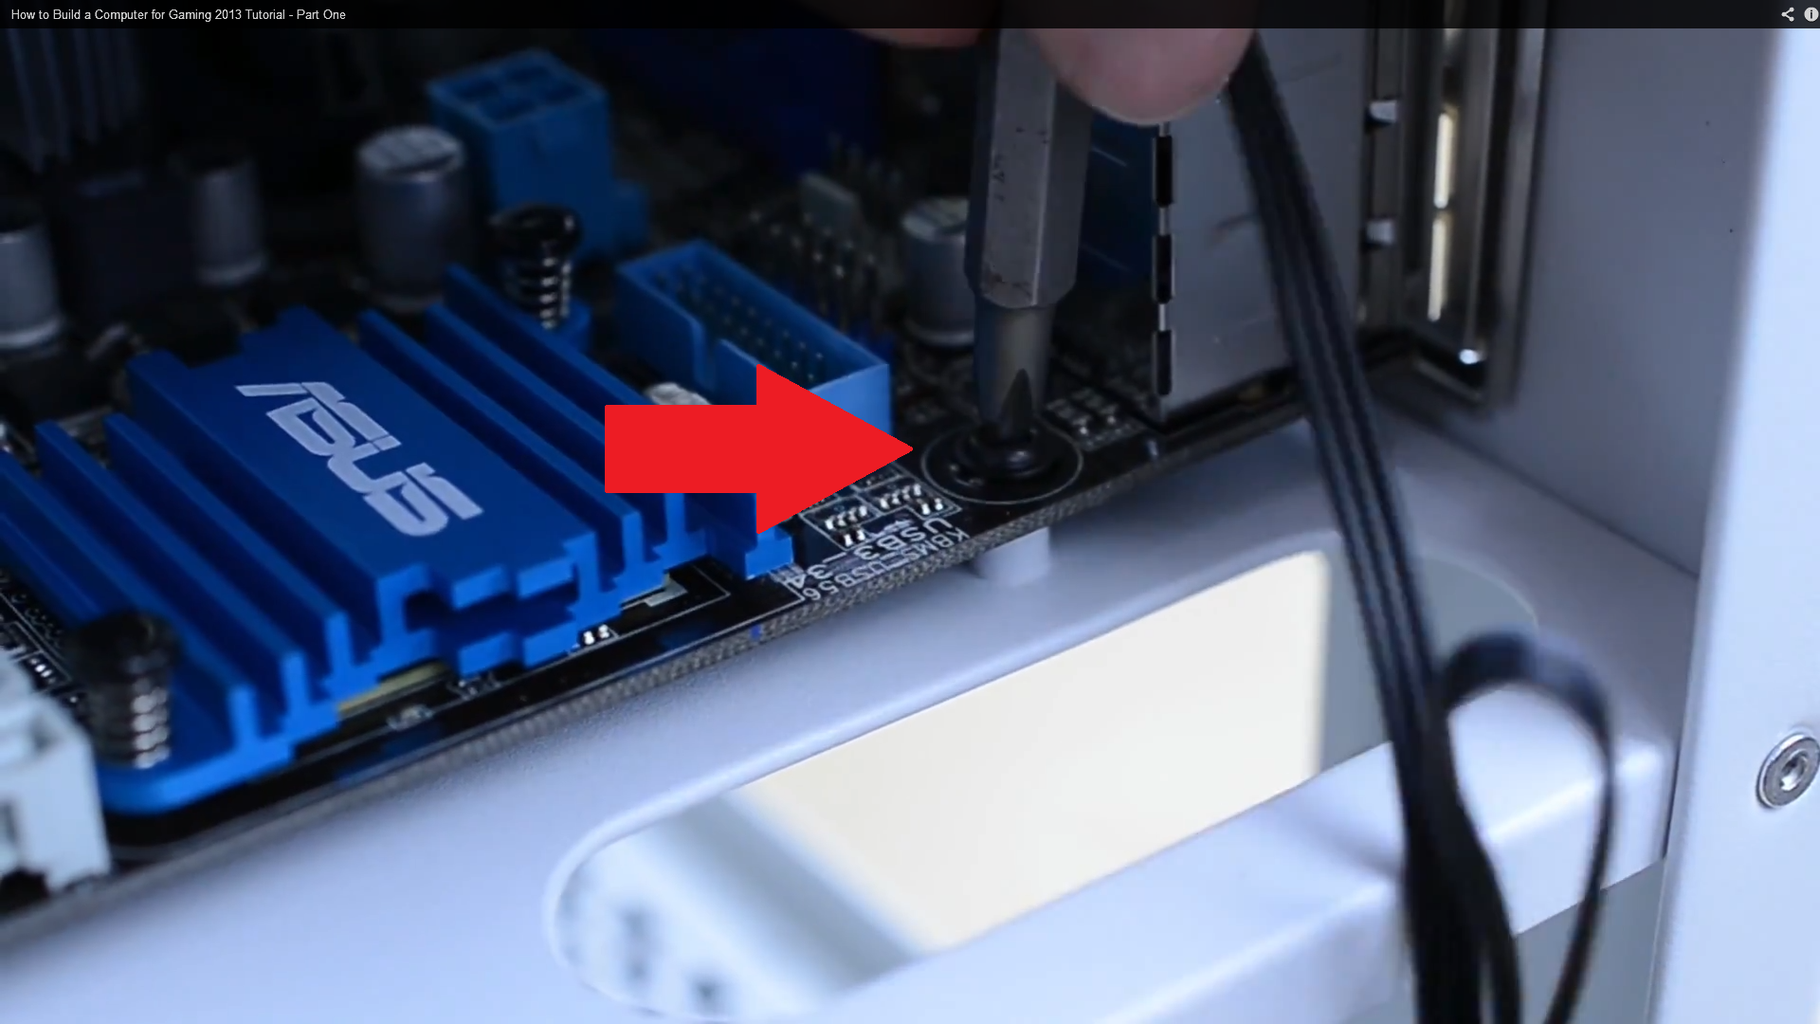 Secure the Motherboard to the Case